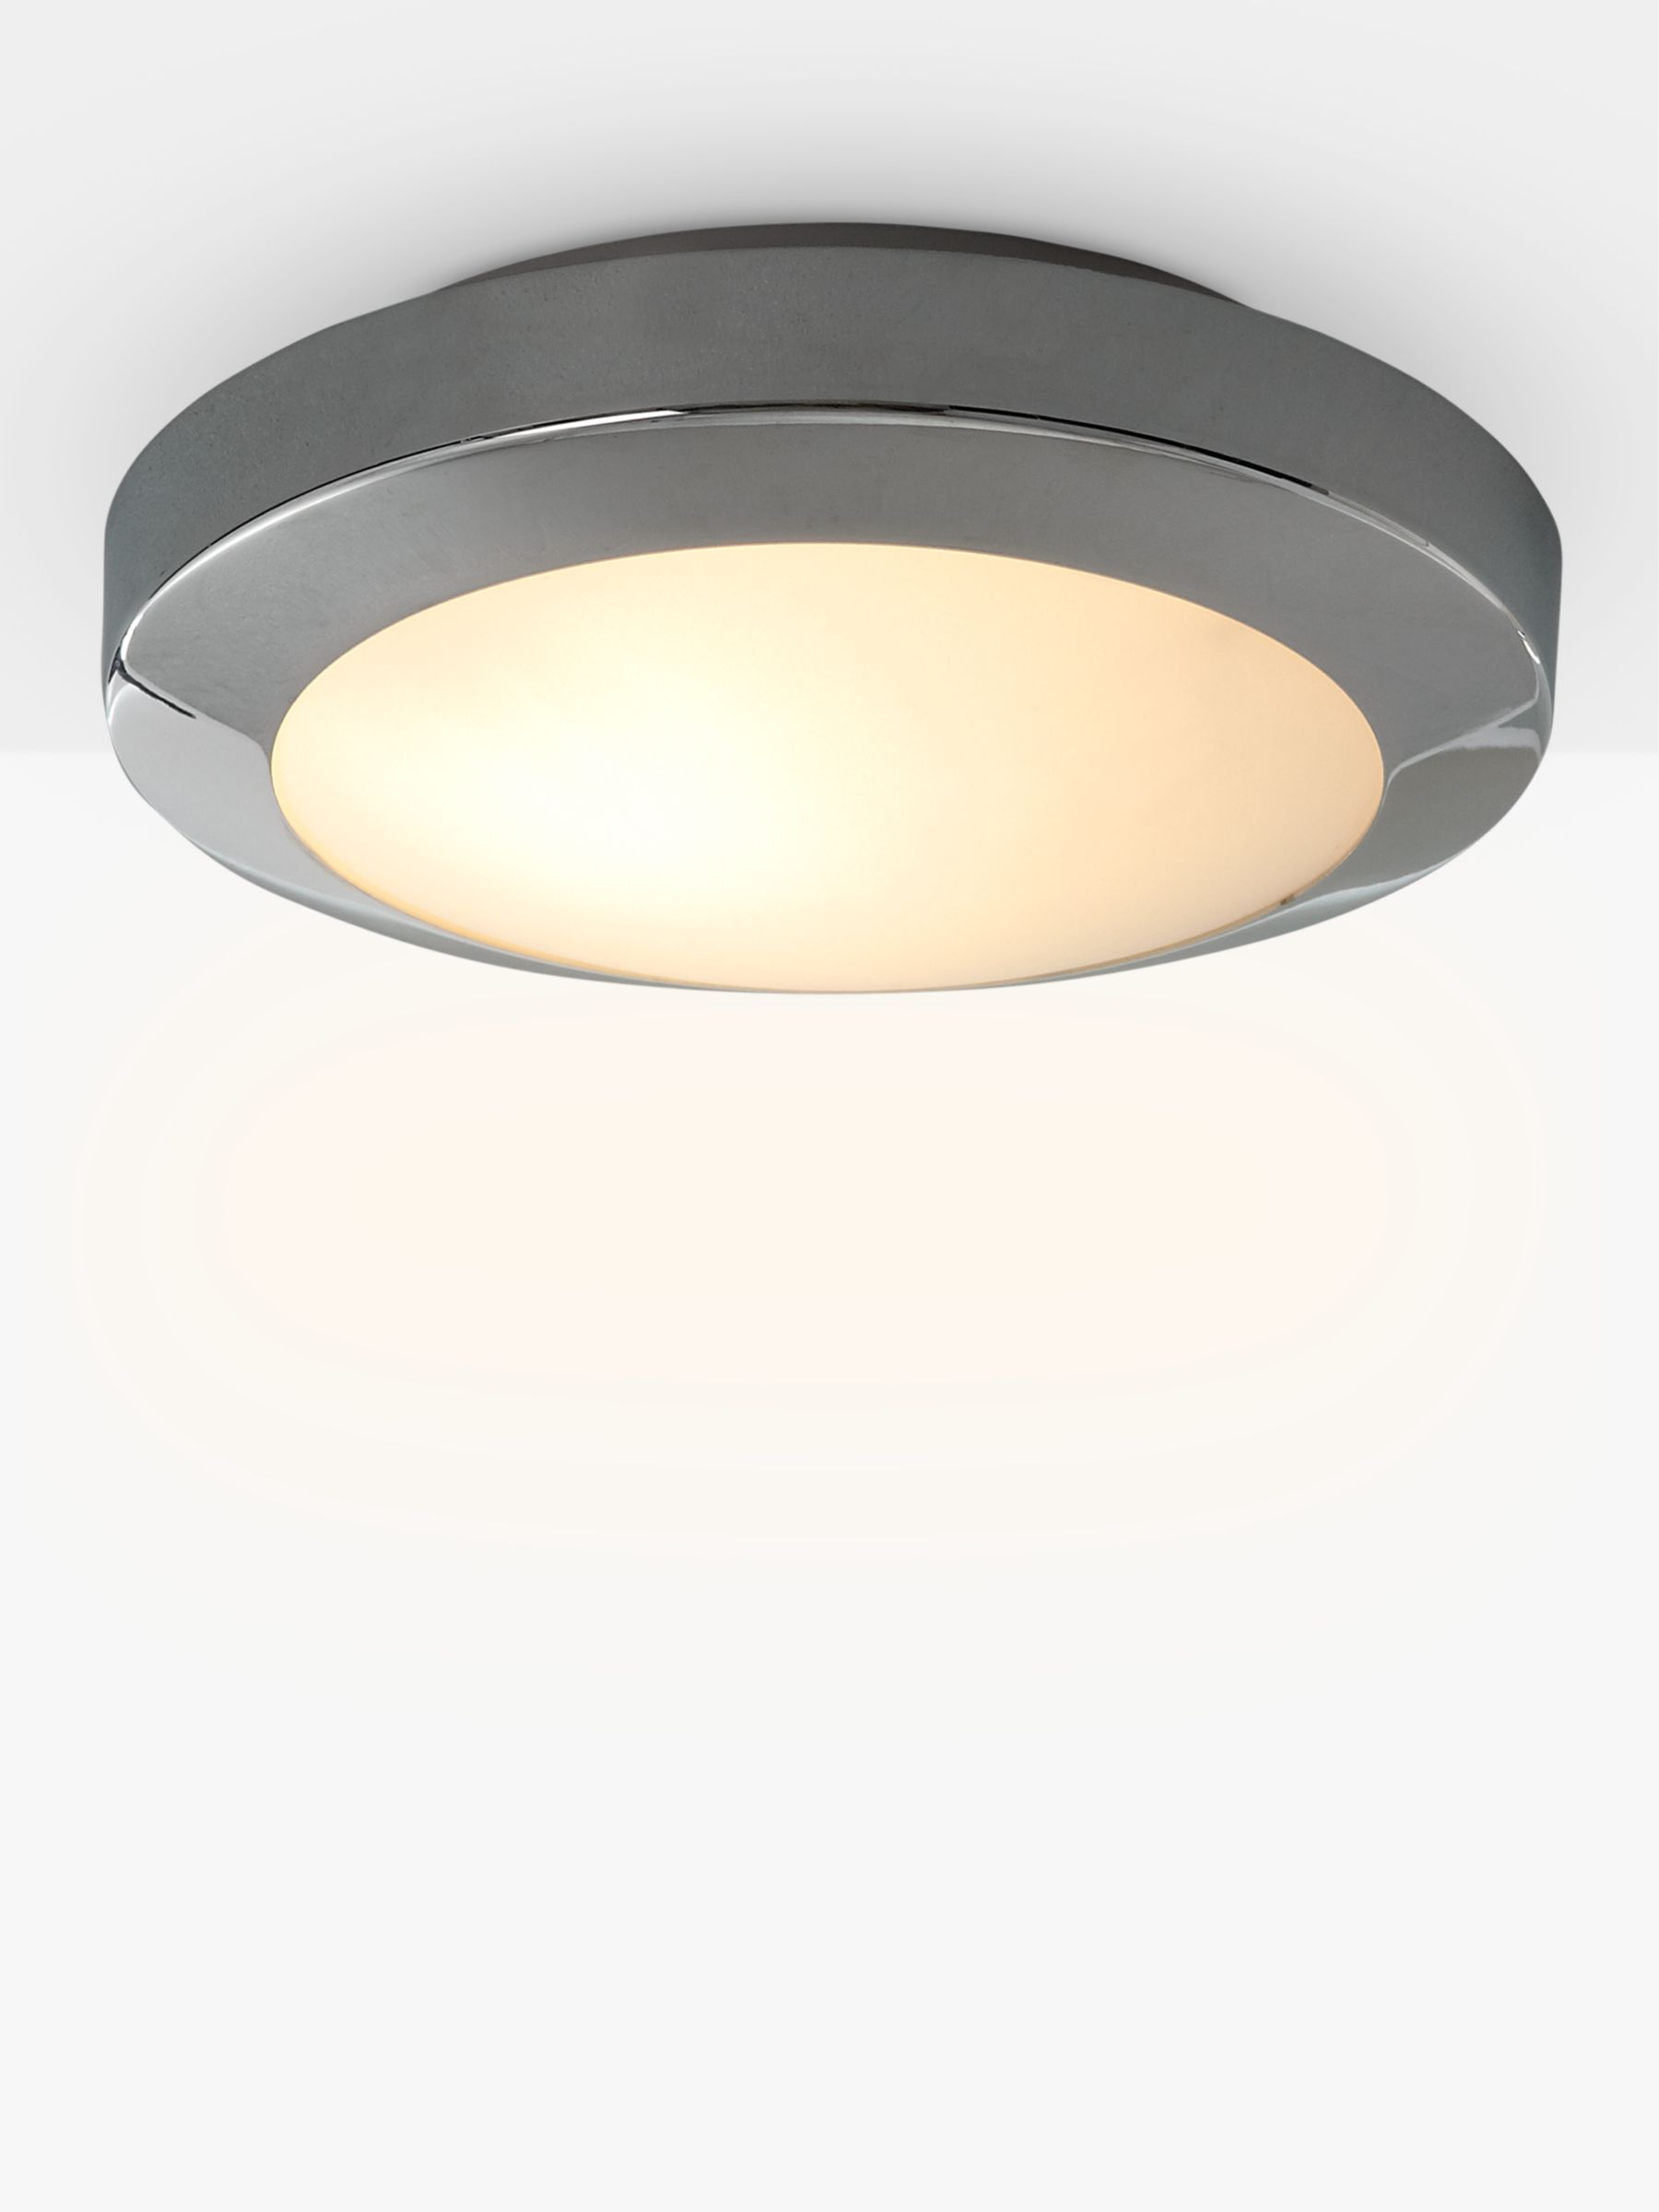 Ceiling Light Fittings At John Lewis : John lewis osaka energy saving bathroom light review